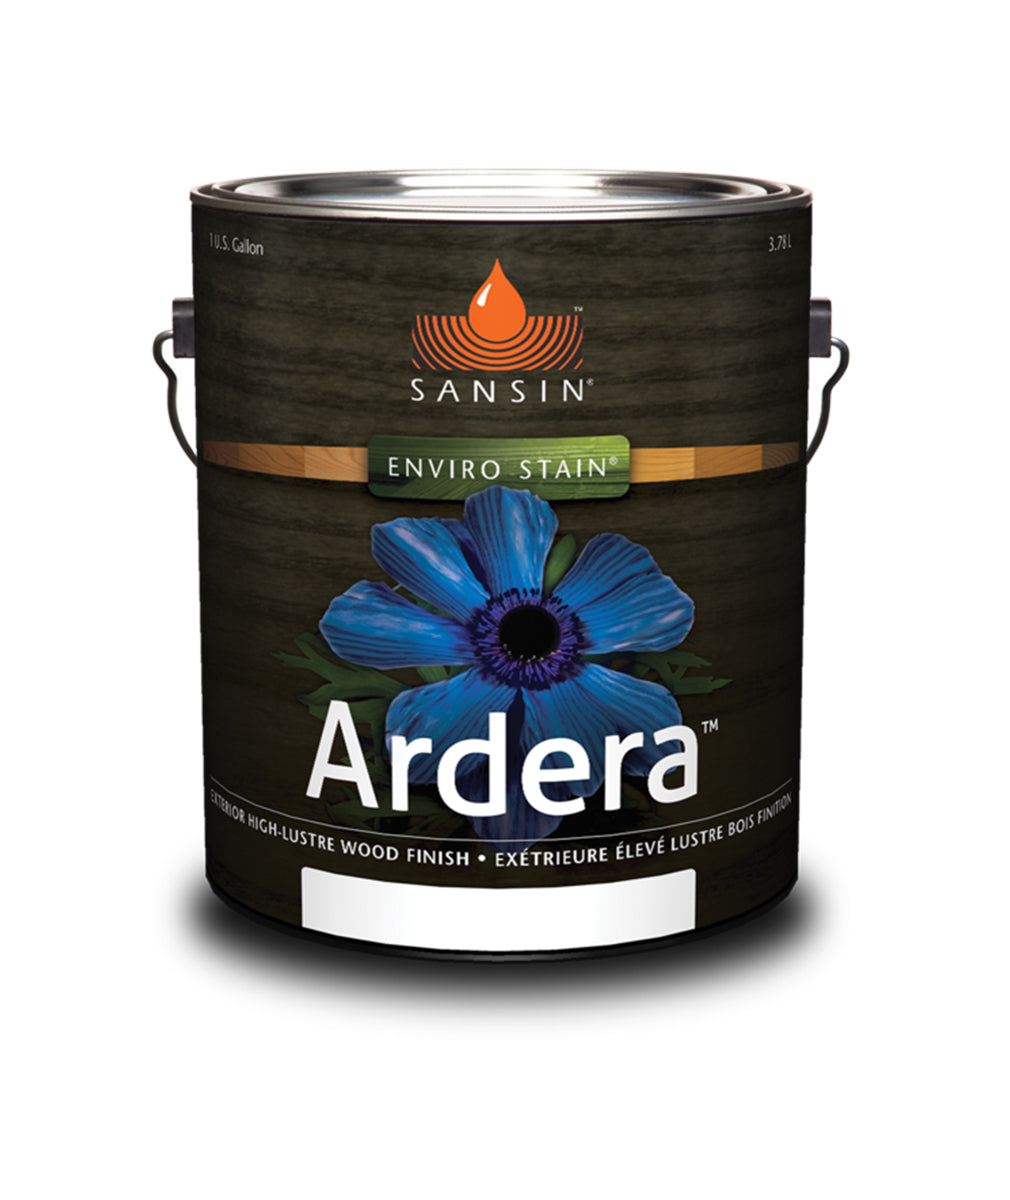 Sansin Ardera Exterior Wood Finish, available at Catalina Paints in CA.